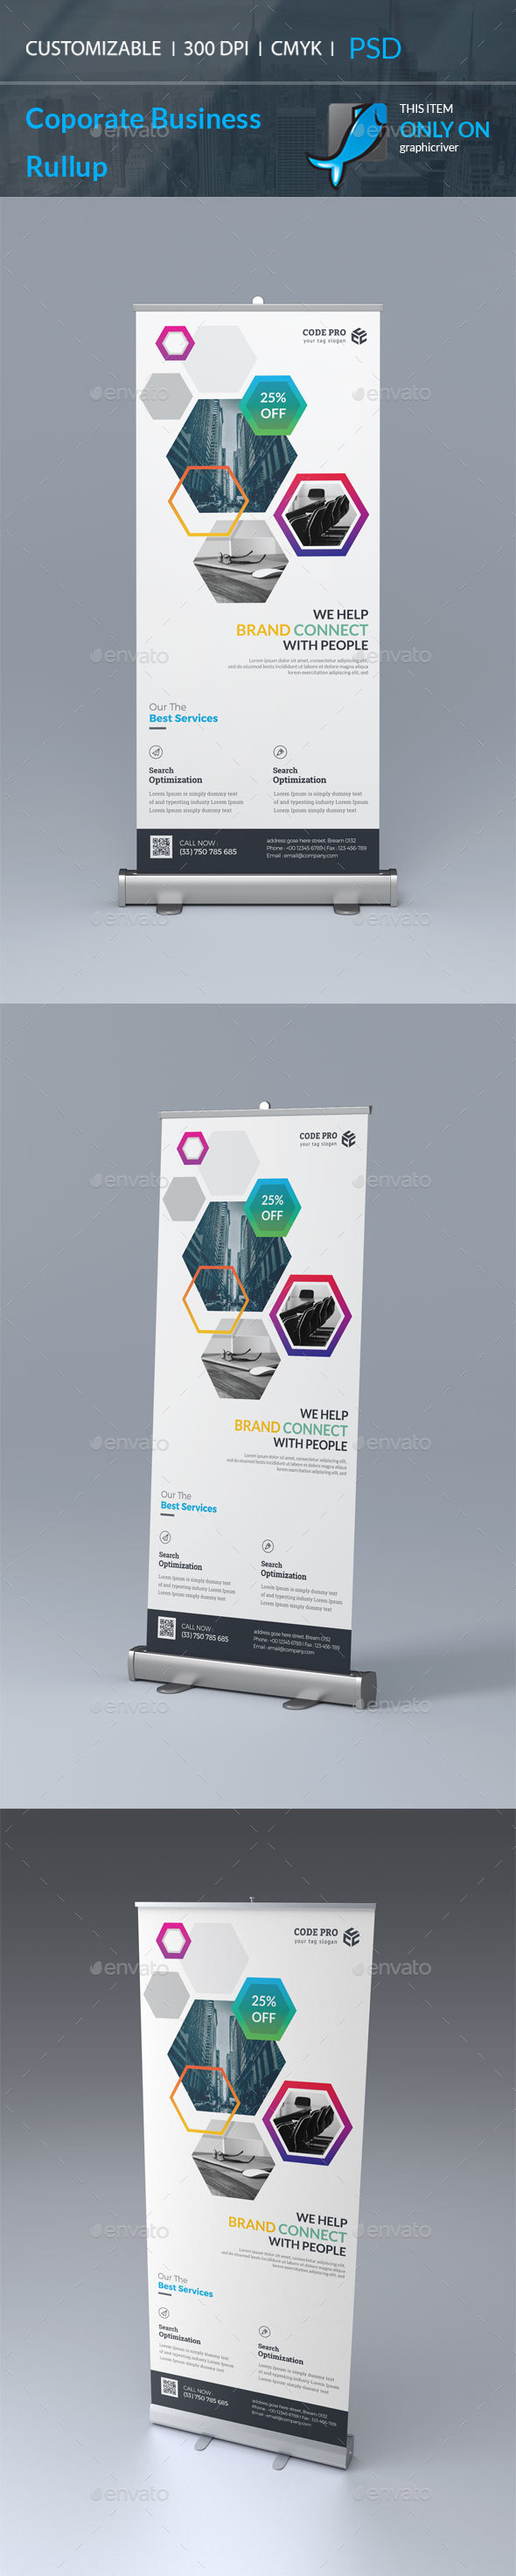 Corporate Roll Up - Stationery Print Templates